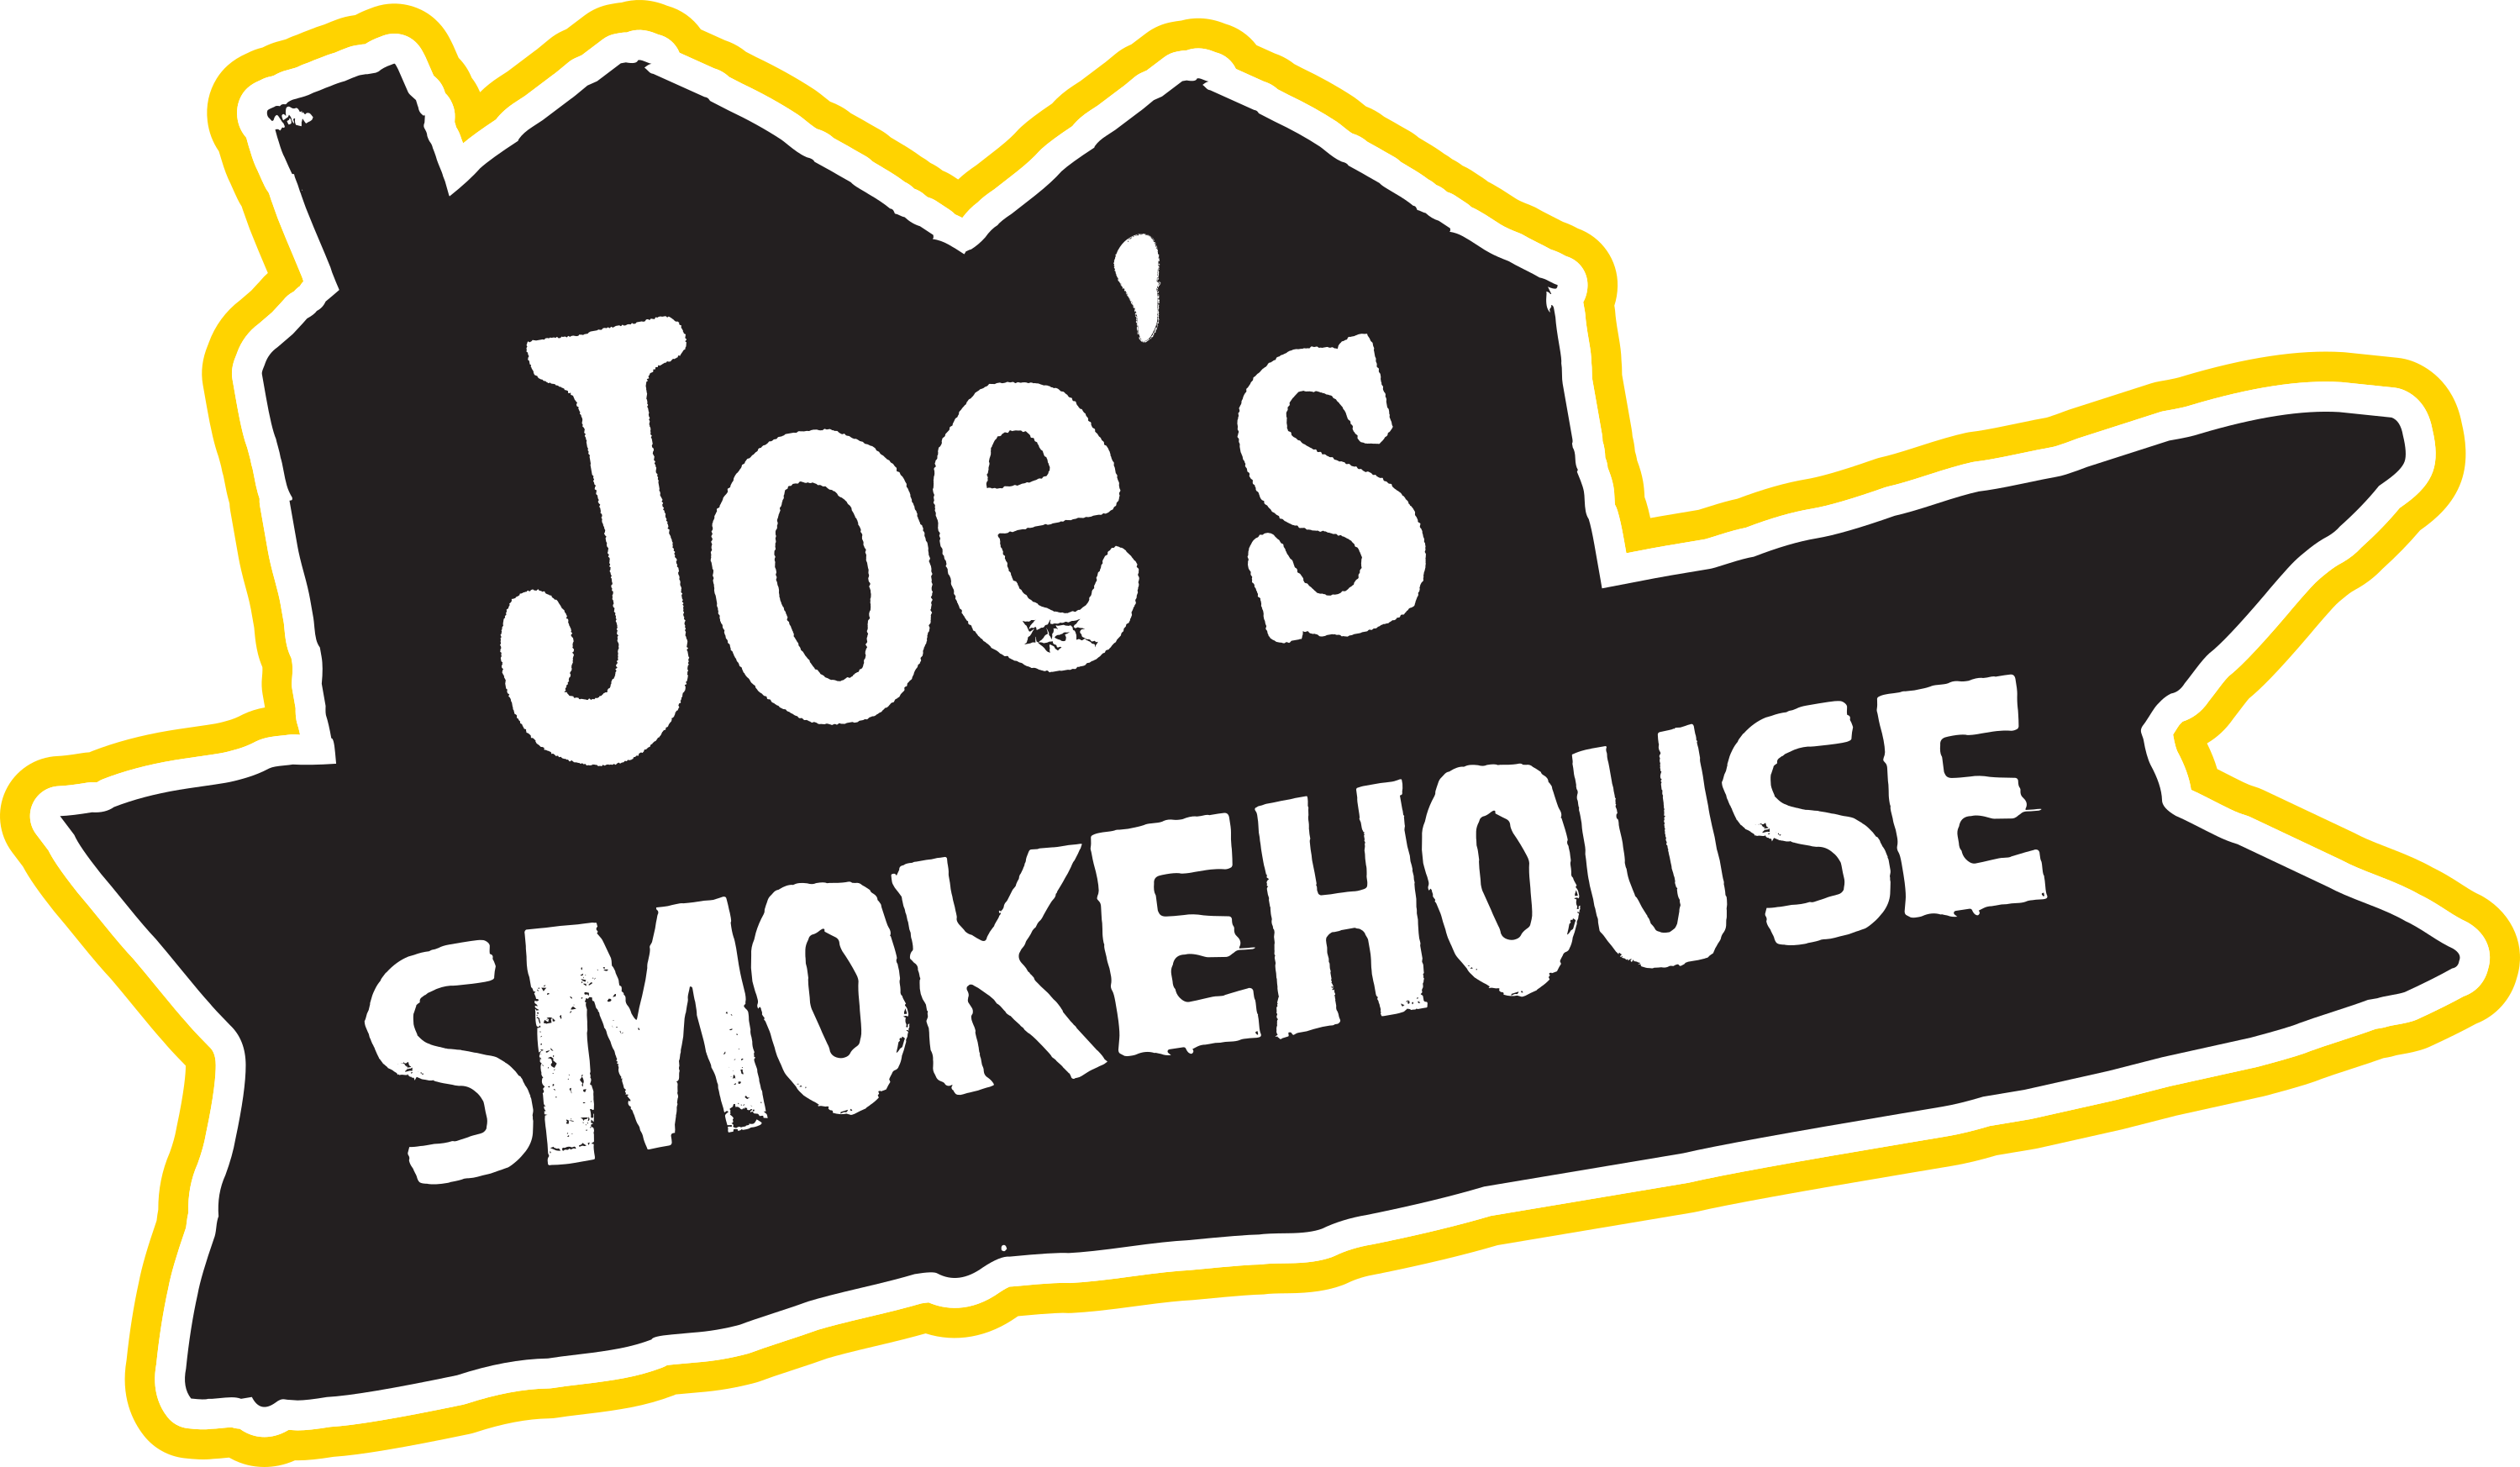 Joe's Smokehouse